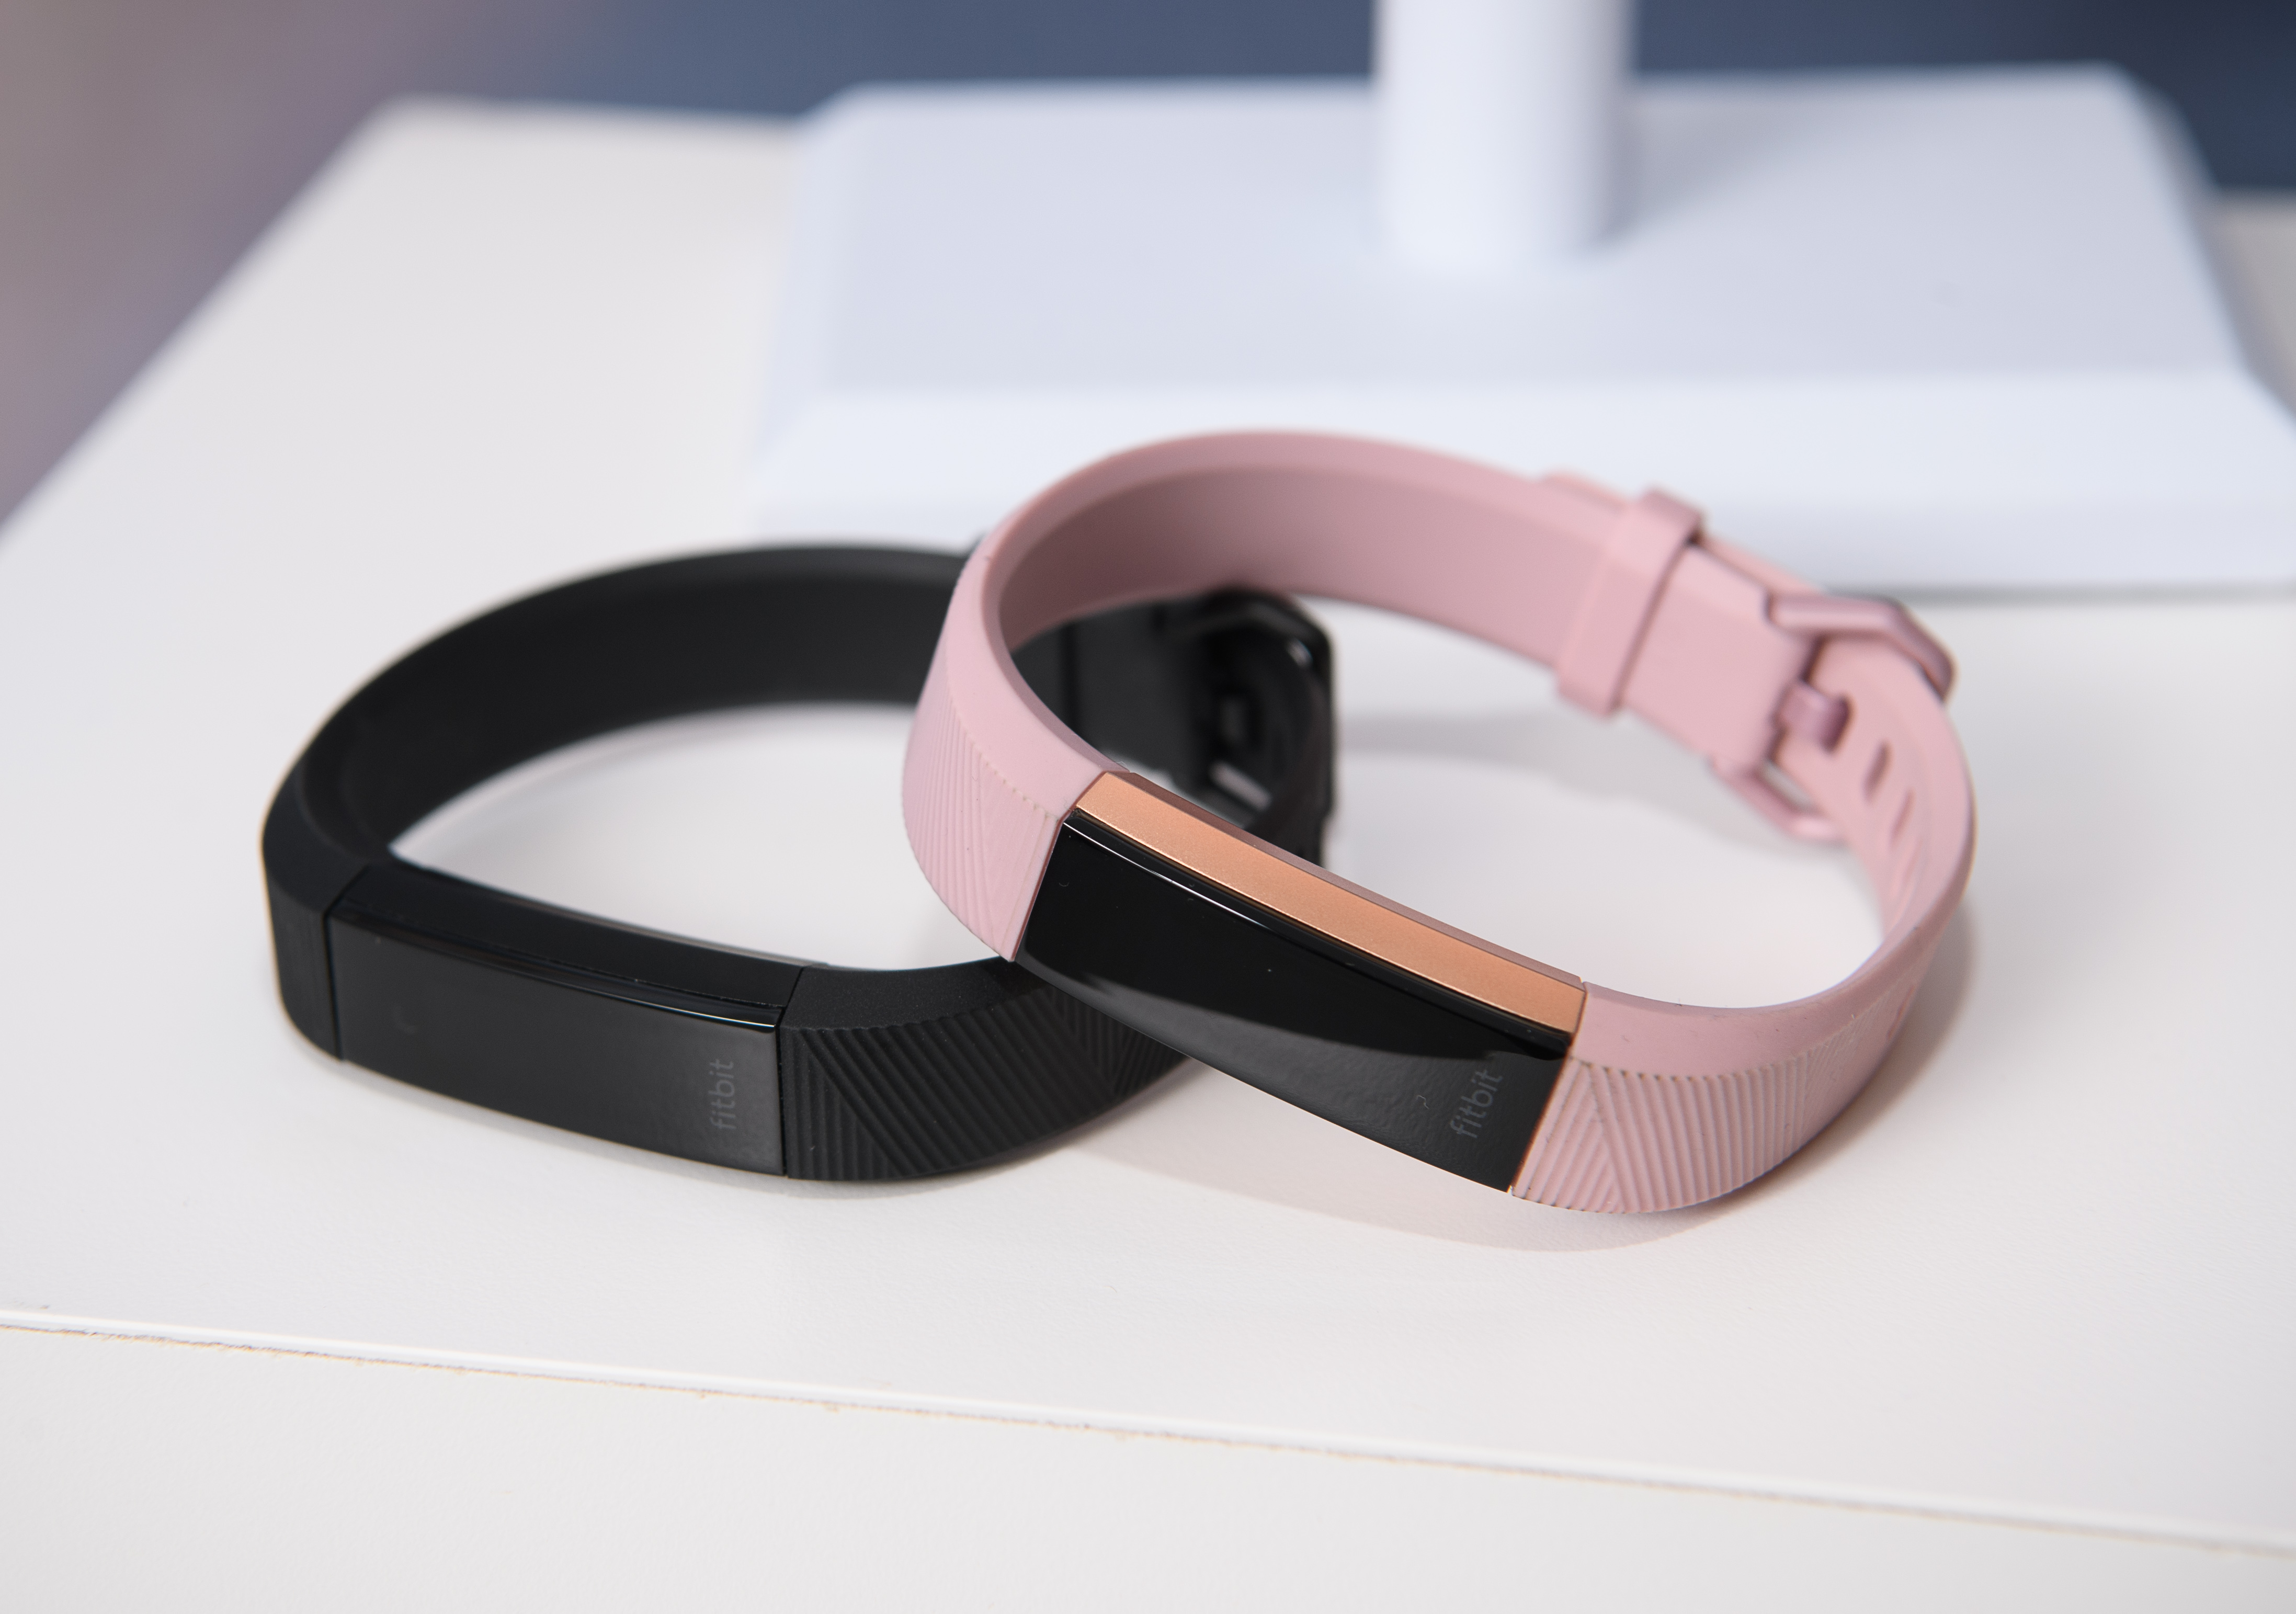 struggling fitbit now has 5 ex employees who face criminal charges